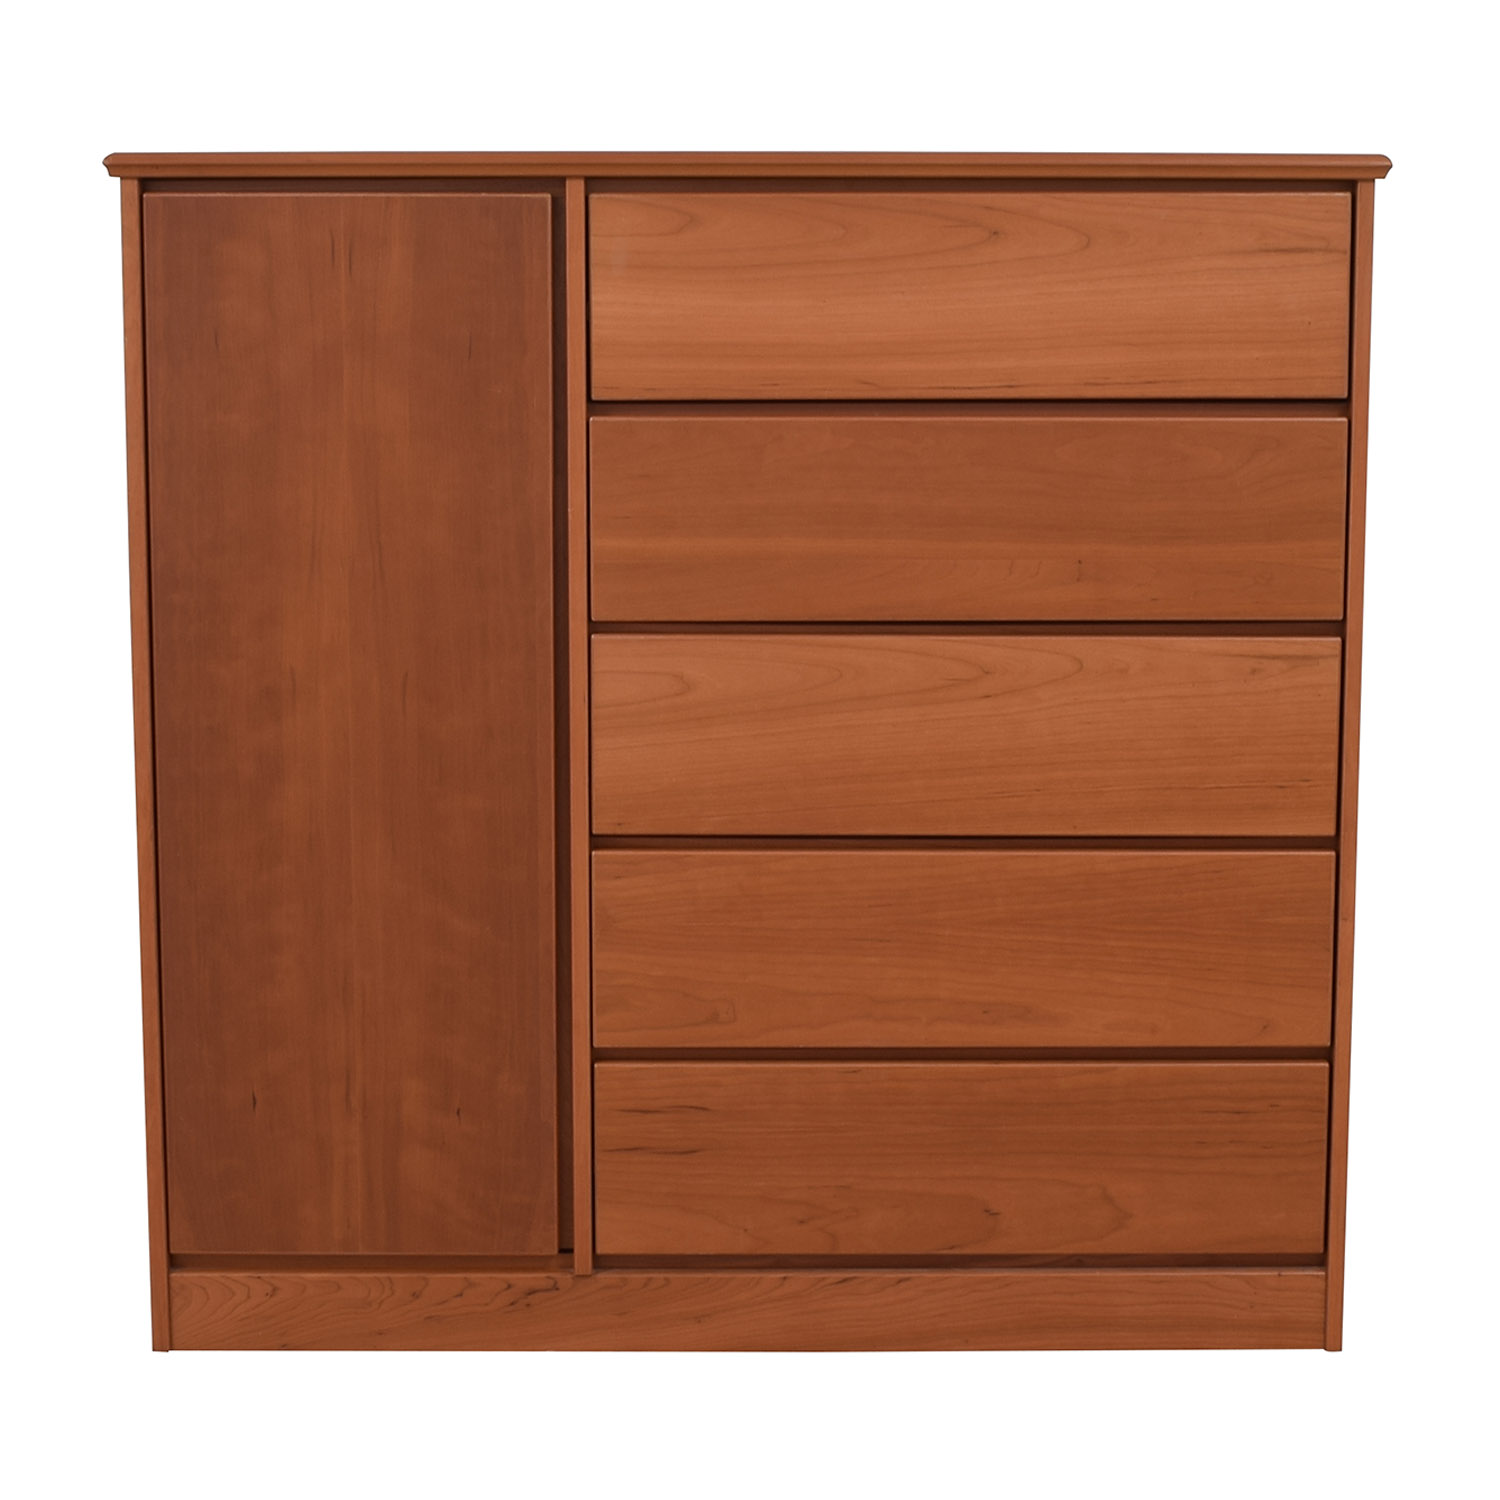 Five-Drawer Bureau Storage